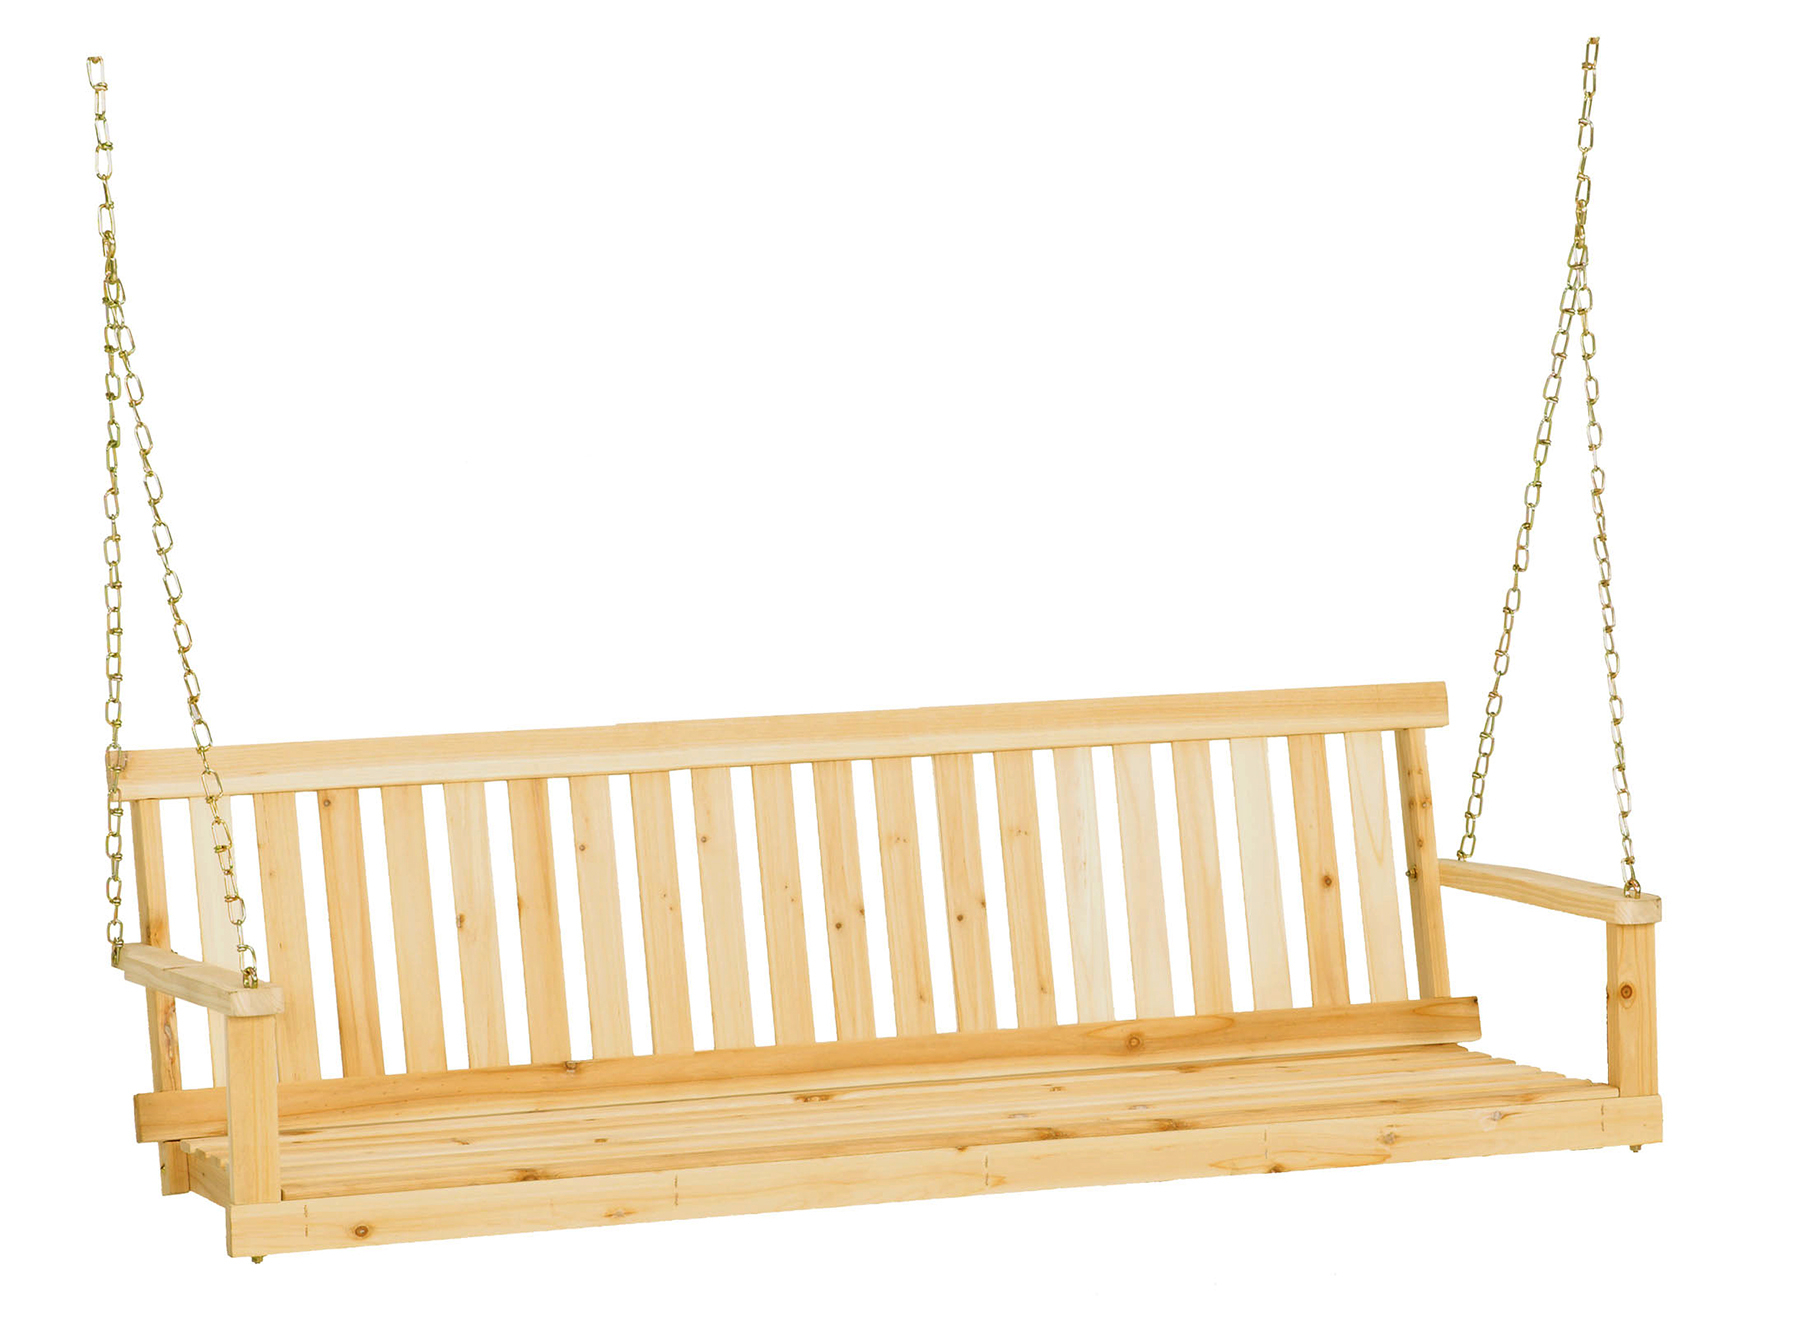 Jack Post Jennings 5' Swing With Chains – Walmart Intended For Porch Swings With Chain (View 9 of 25)